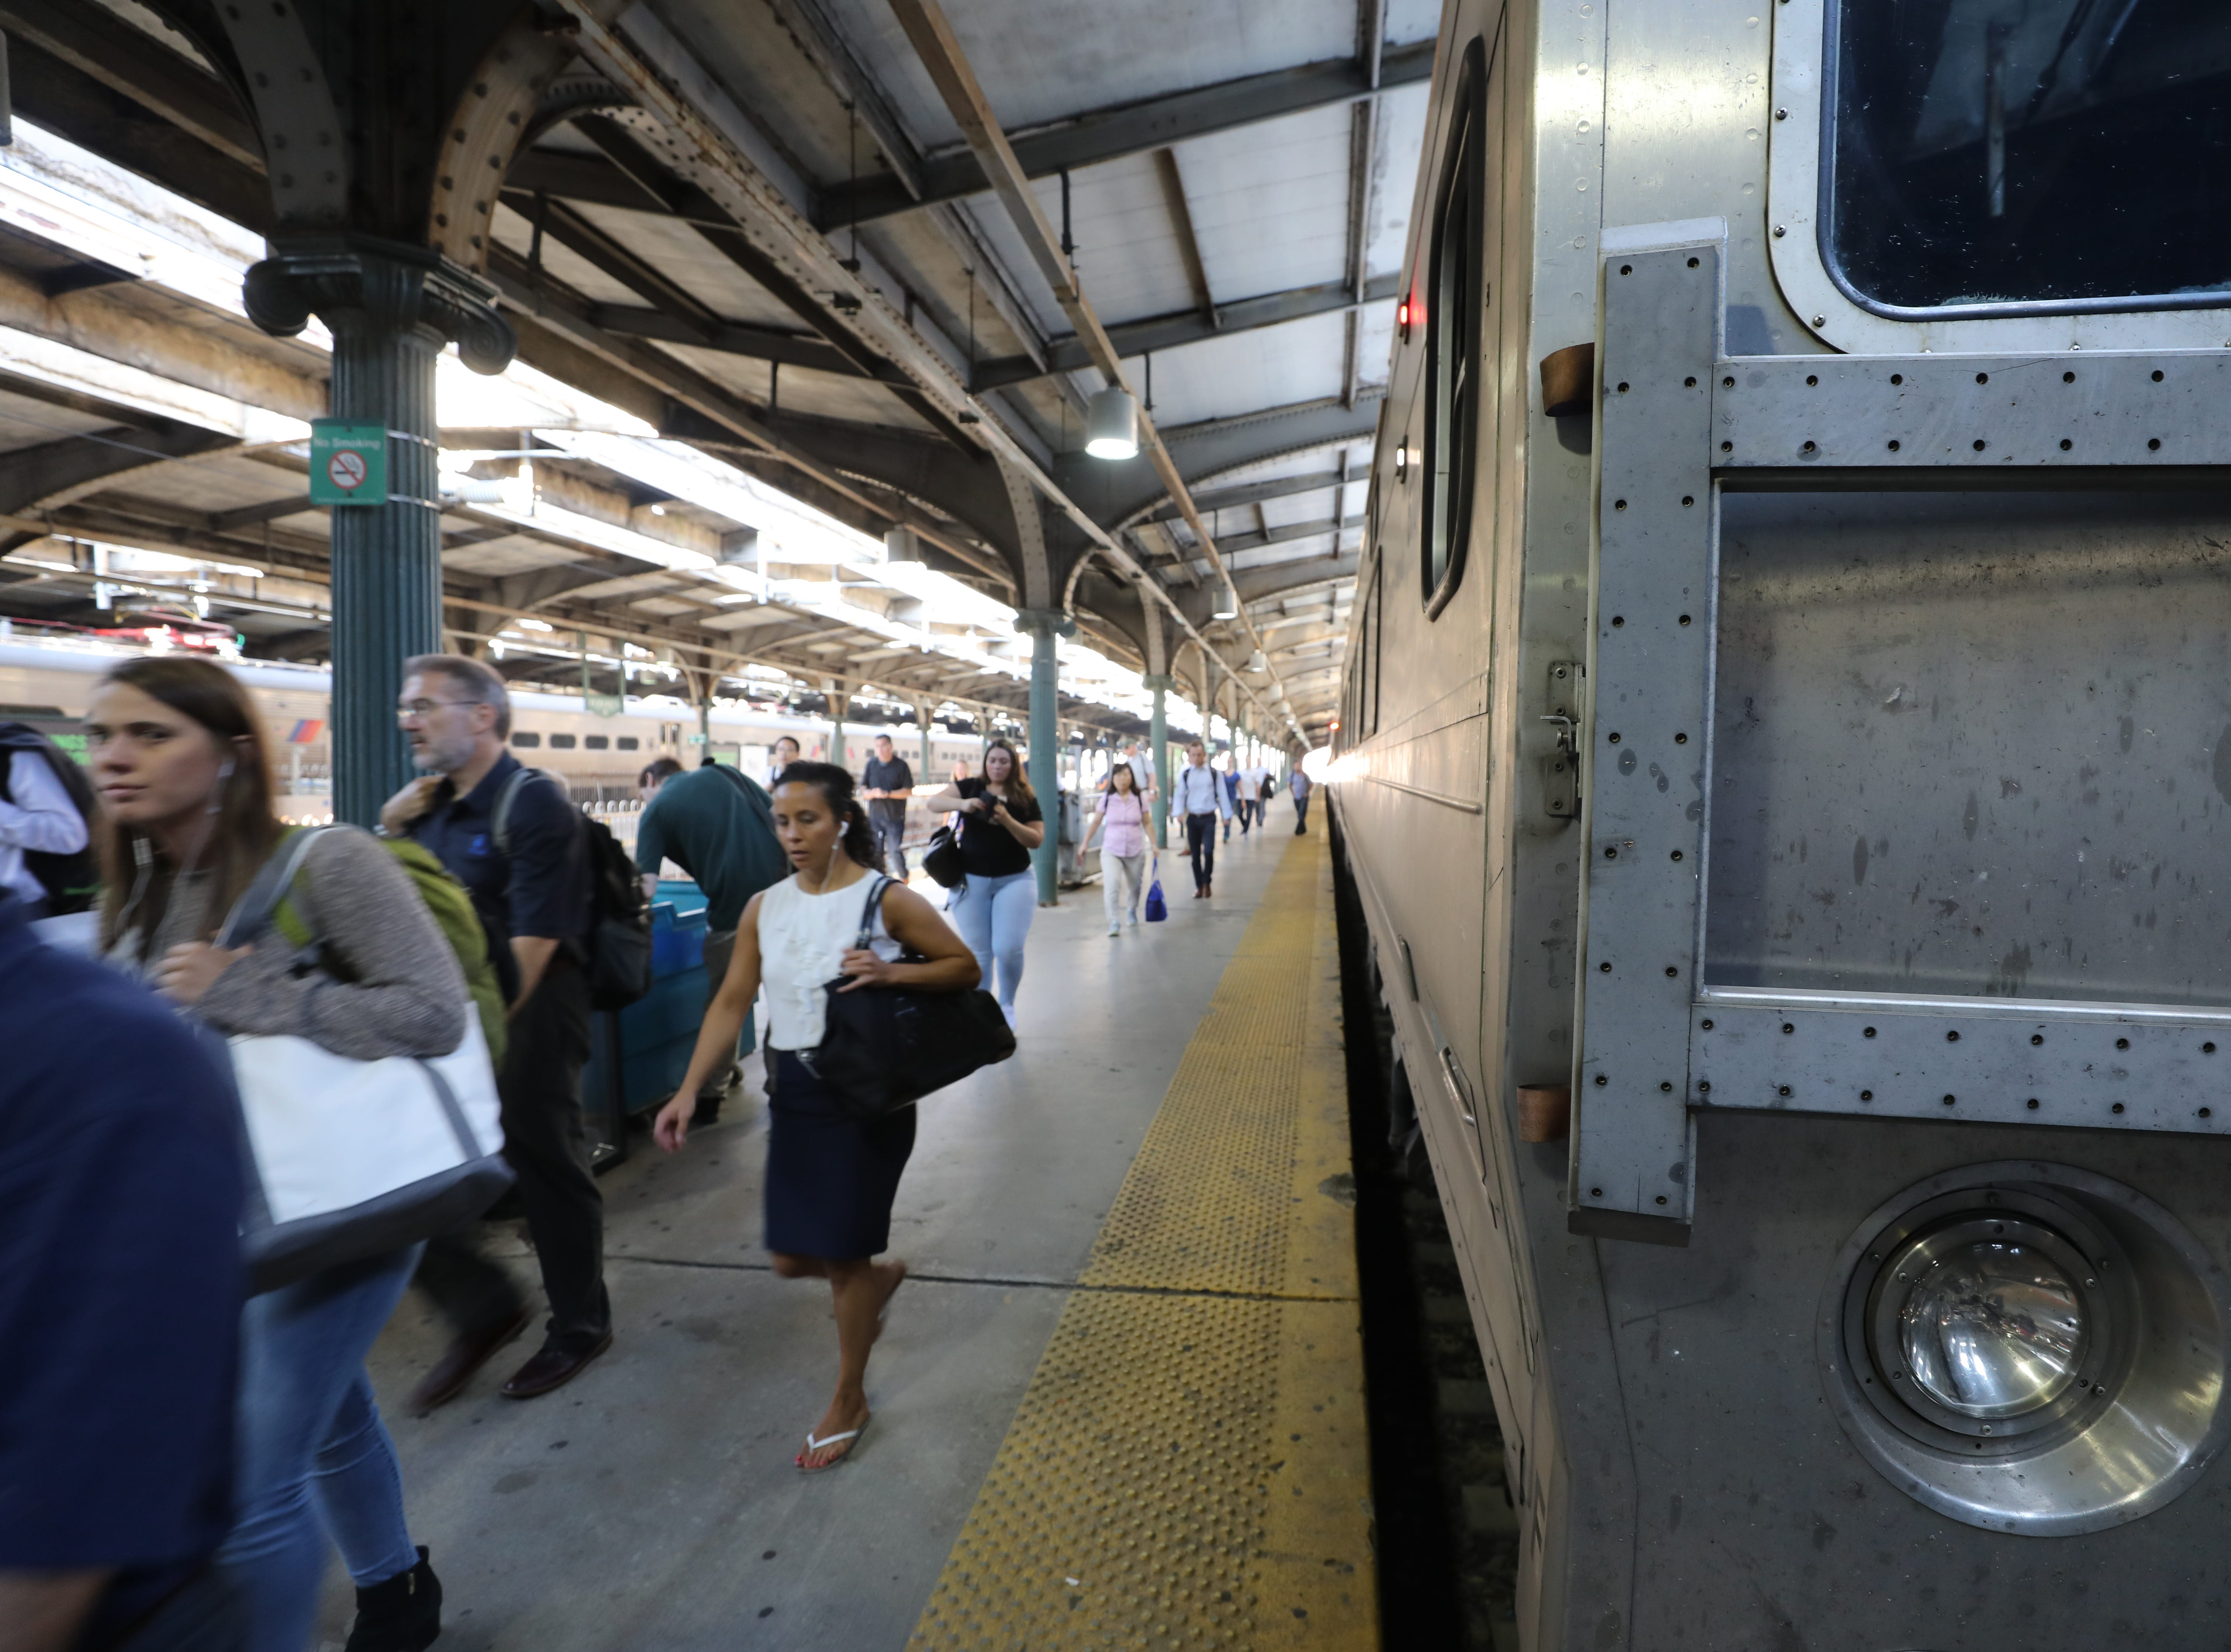 Multiple delays on Morris & Essex line;  four NJ Transit trains canceled